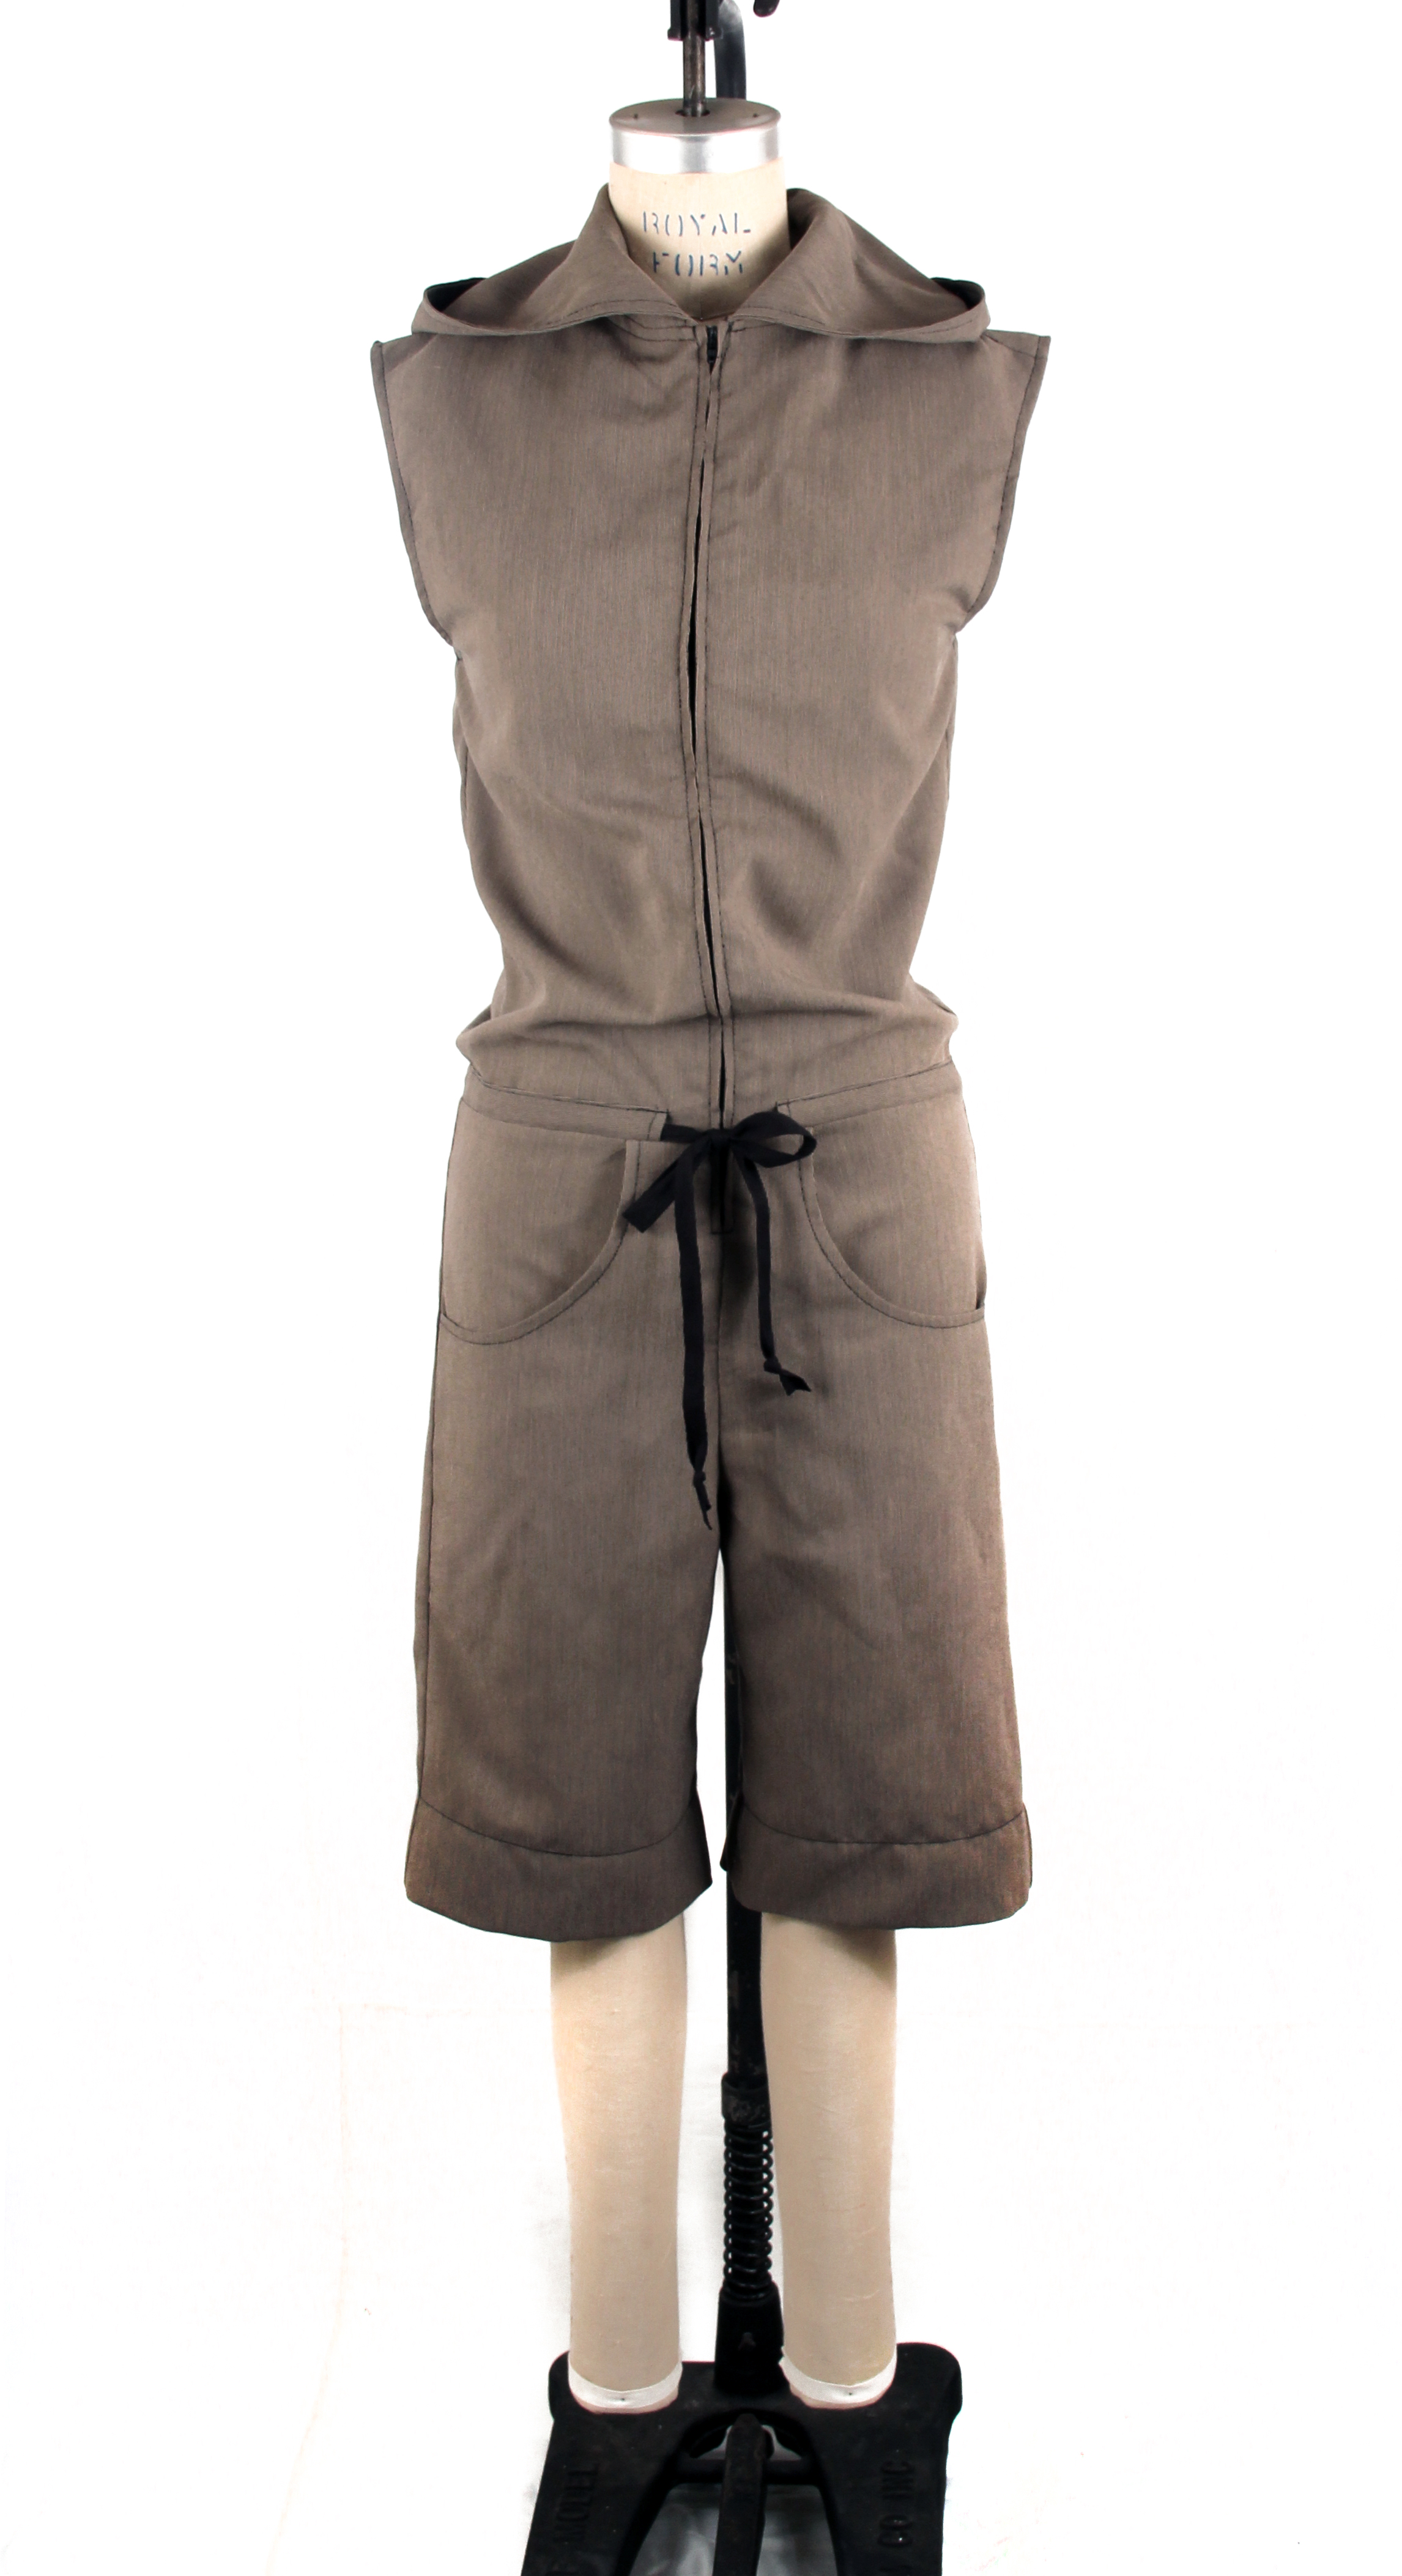 Sand_Coveralls_front_2.2014.JPG